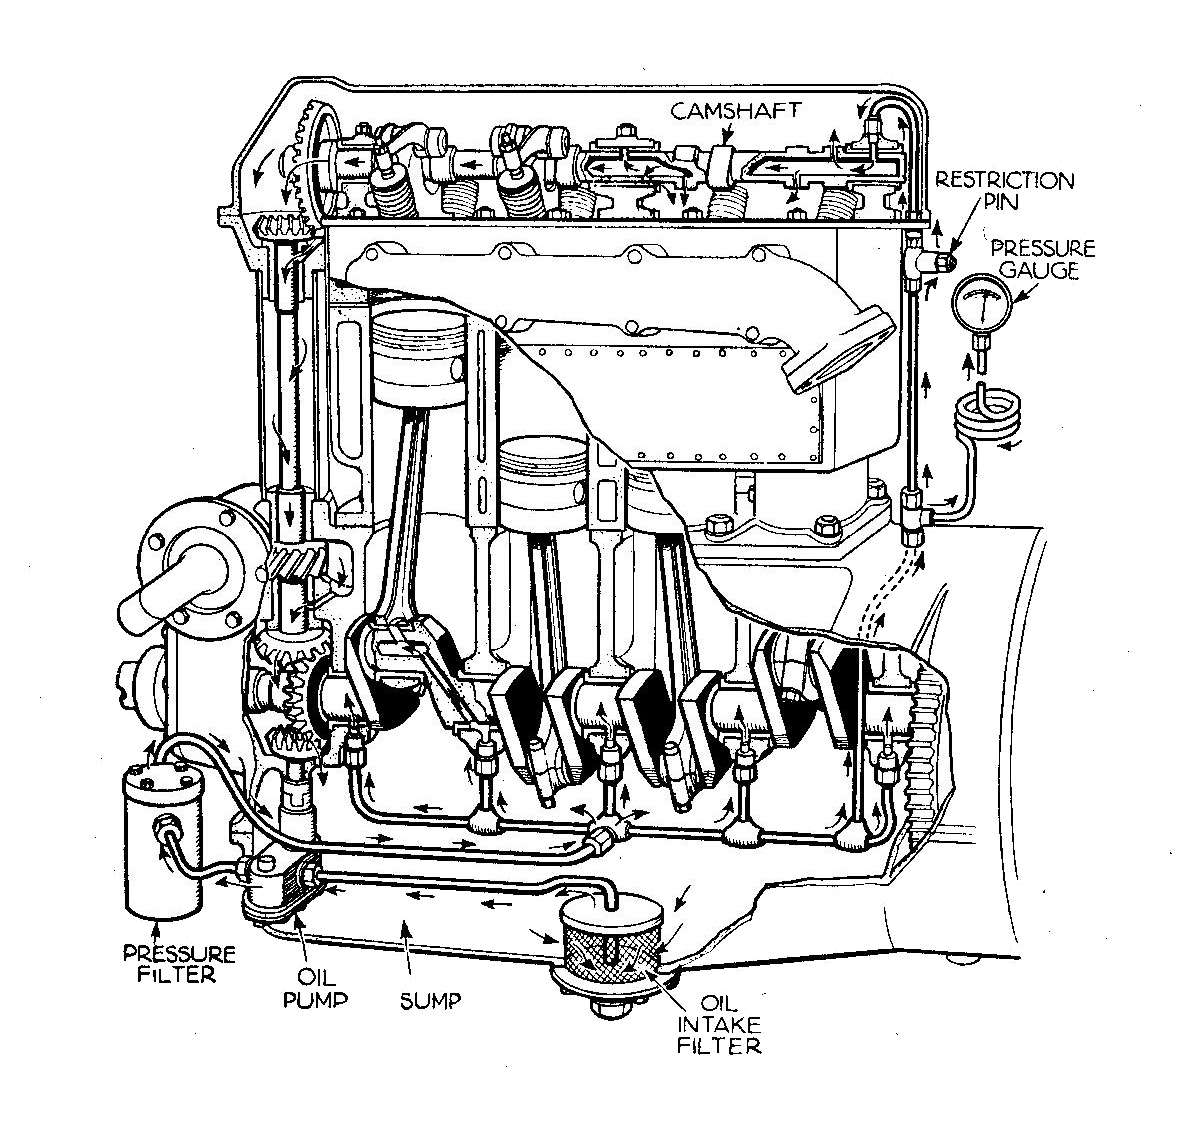 Oil Pump Internal Combustion Engine Wikipedia